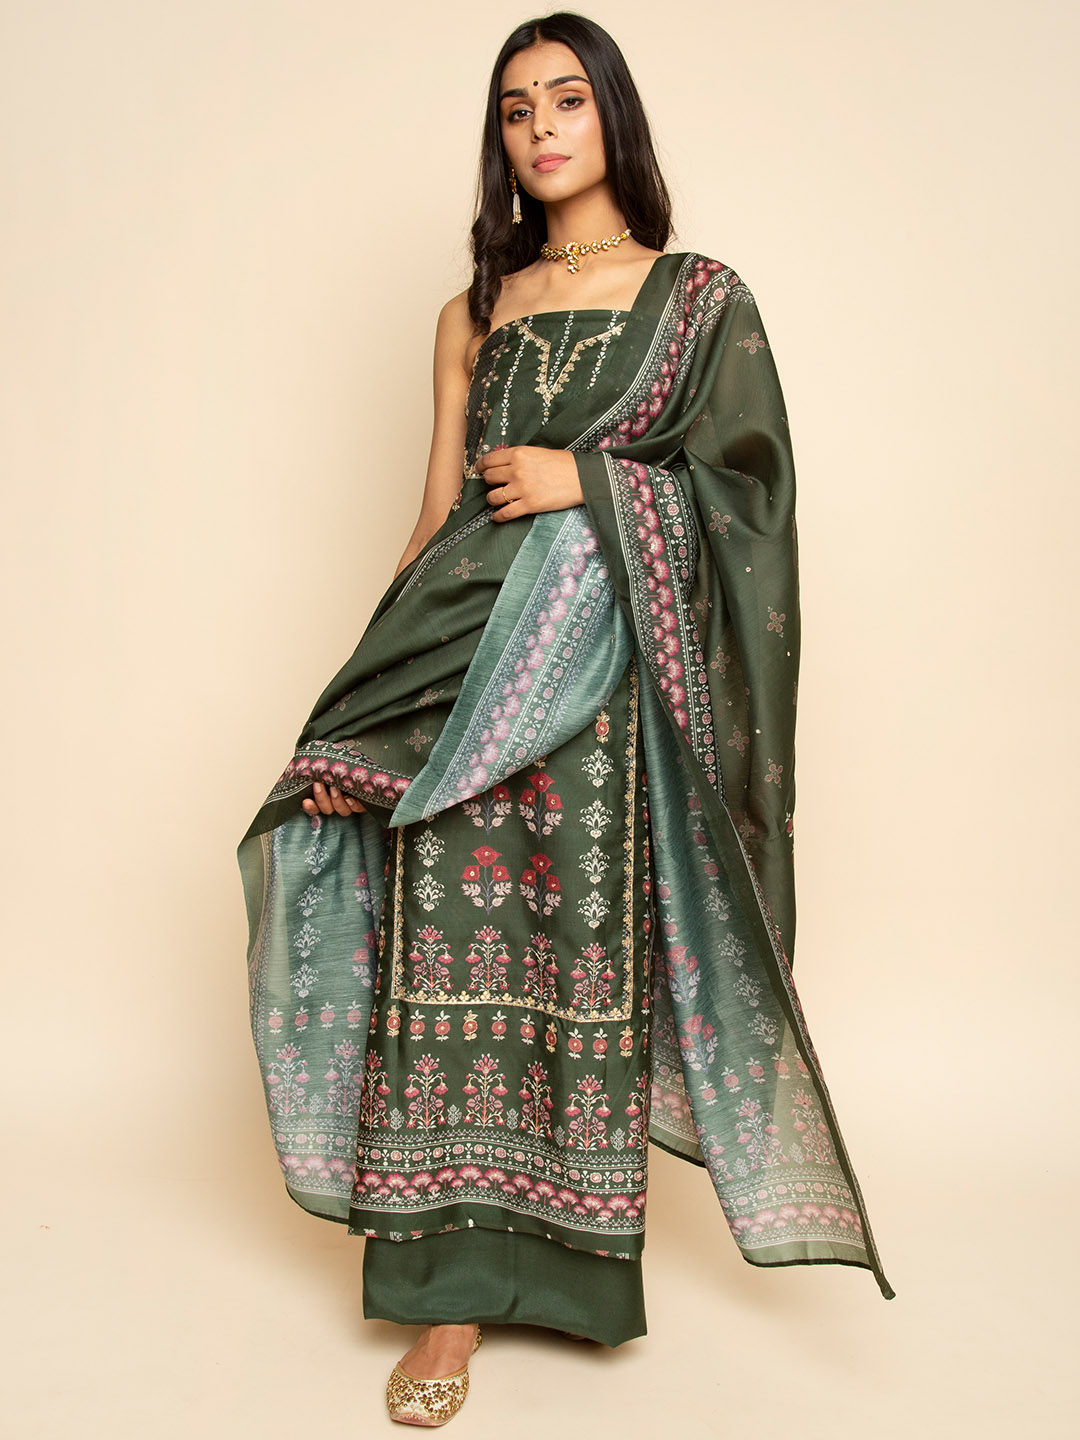 CHANDERI PRINTED GOTA EMBROIDERY SUIT